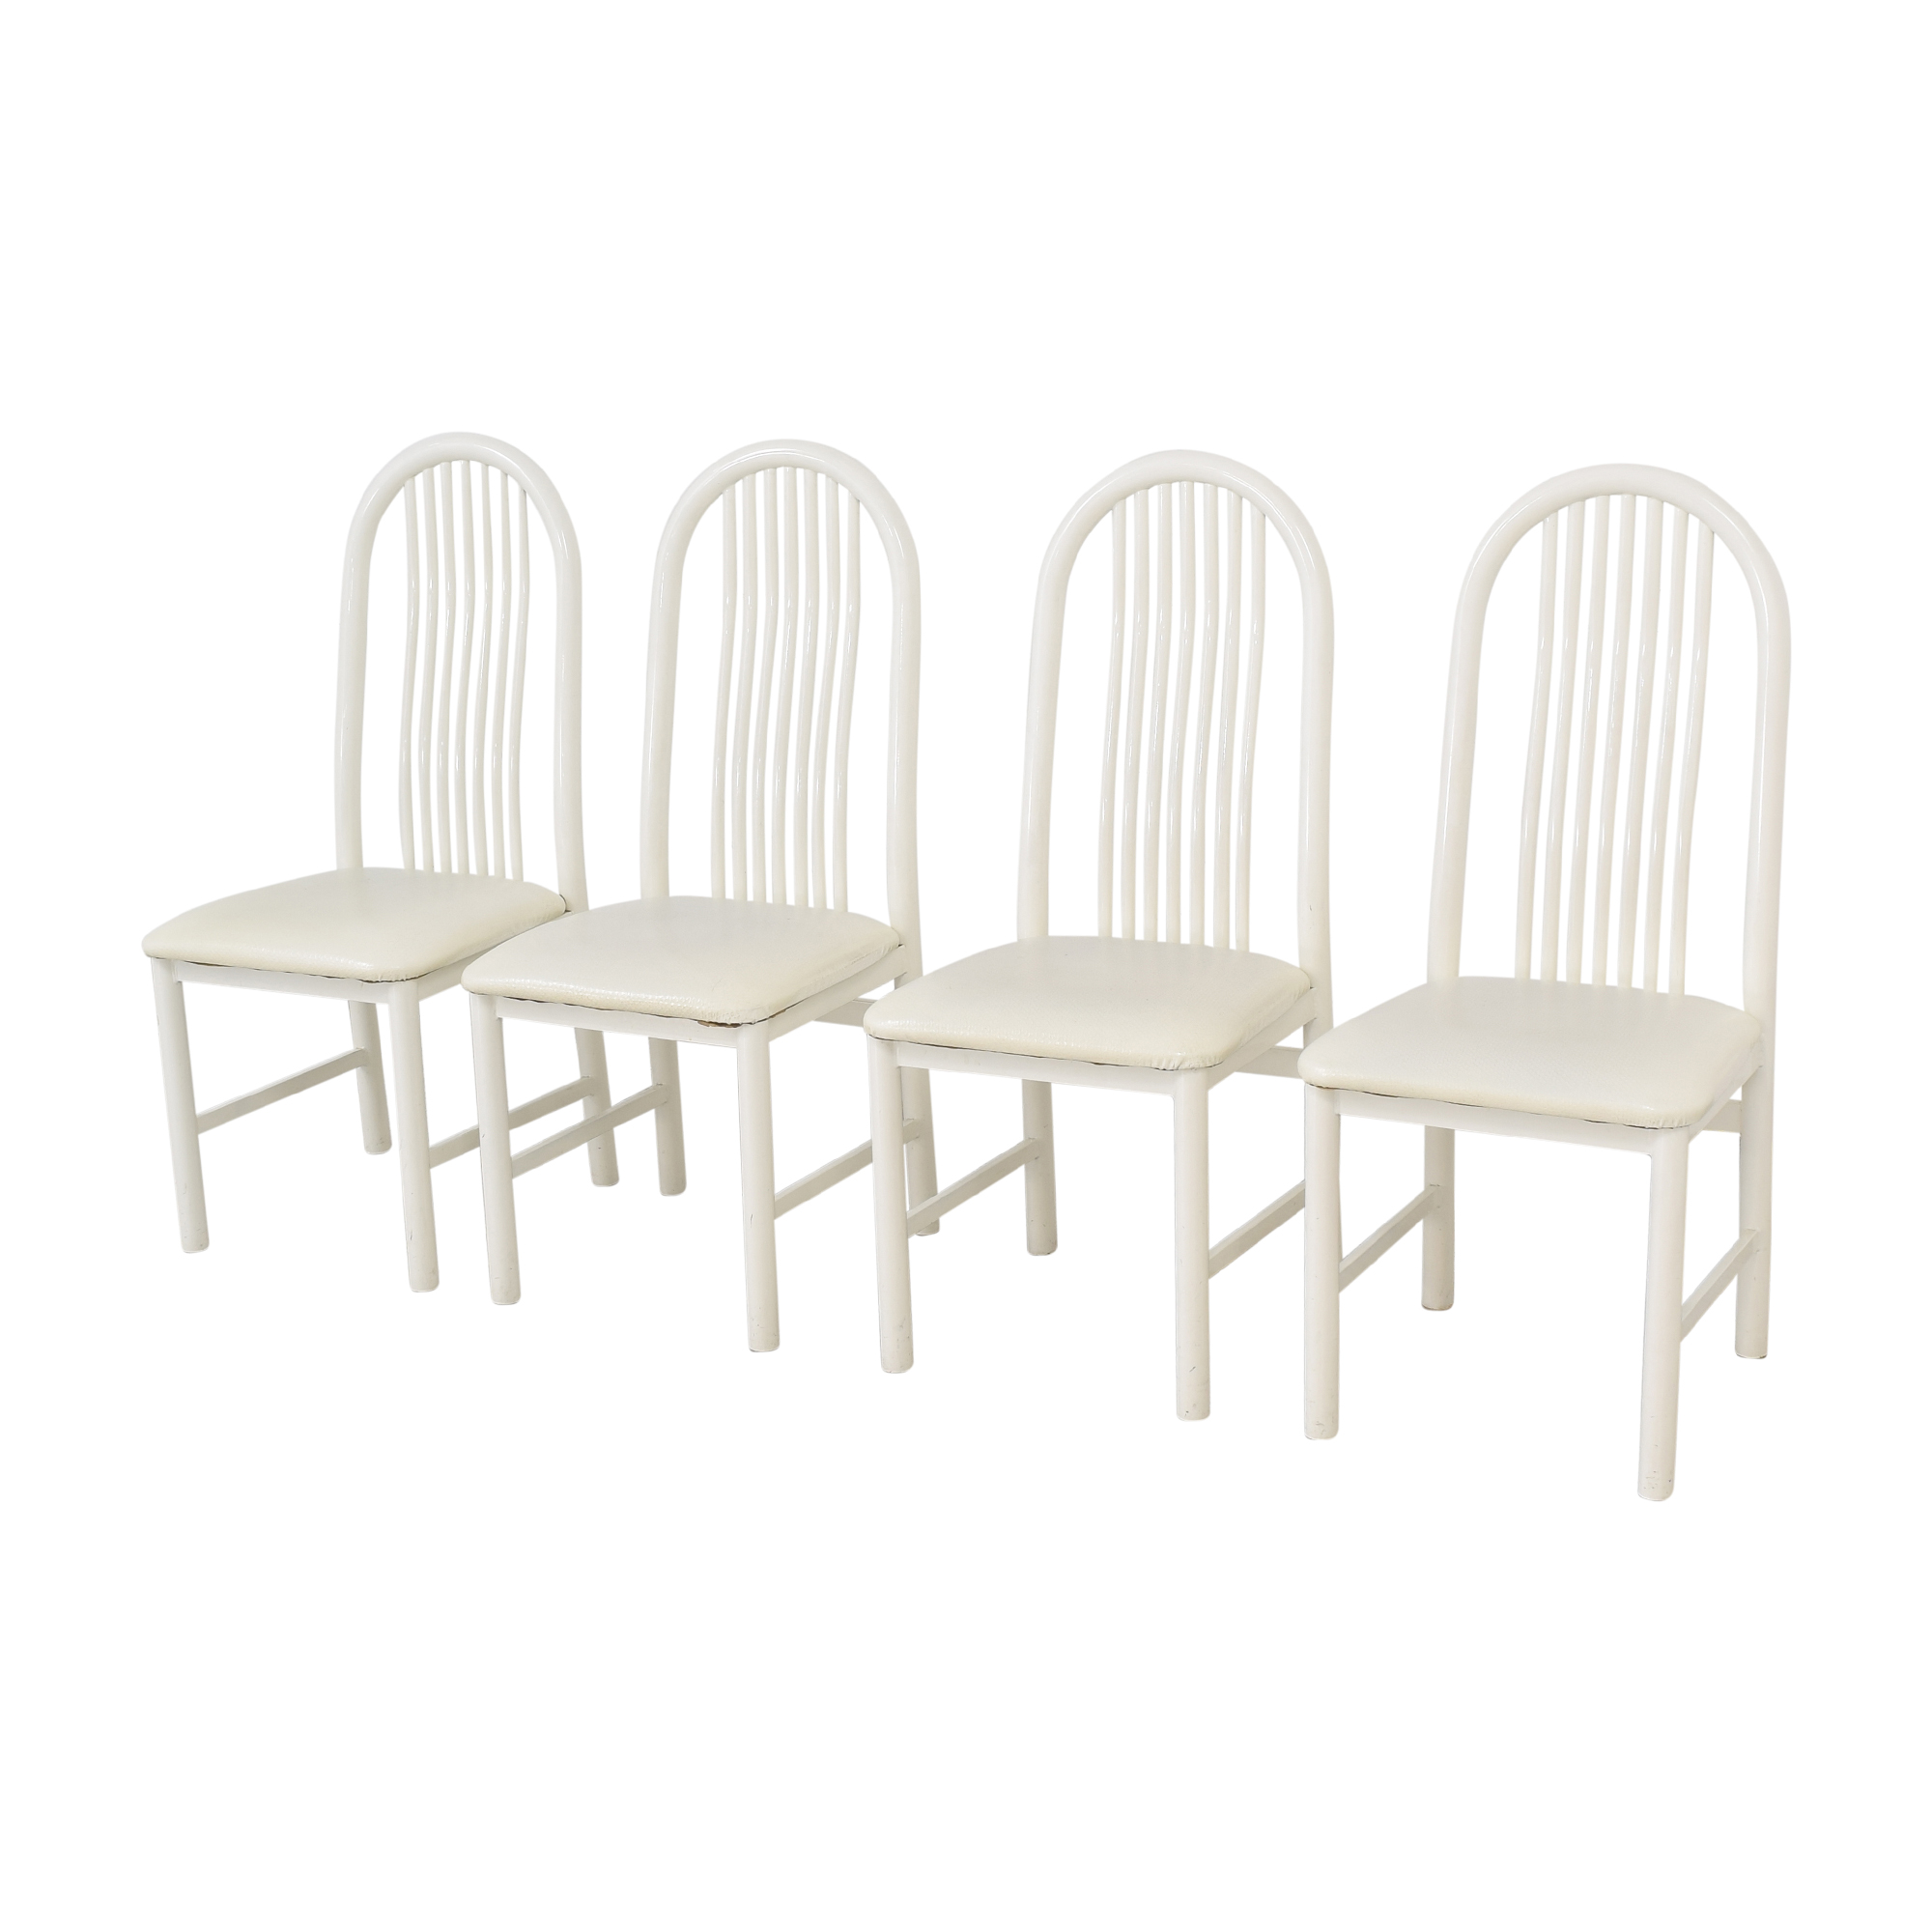 Arch Back Dining Chairs on sale